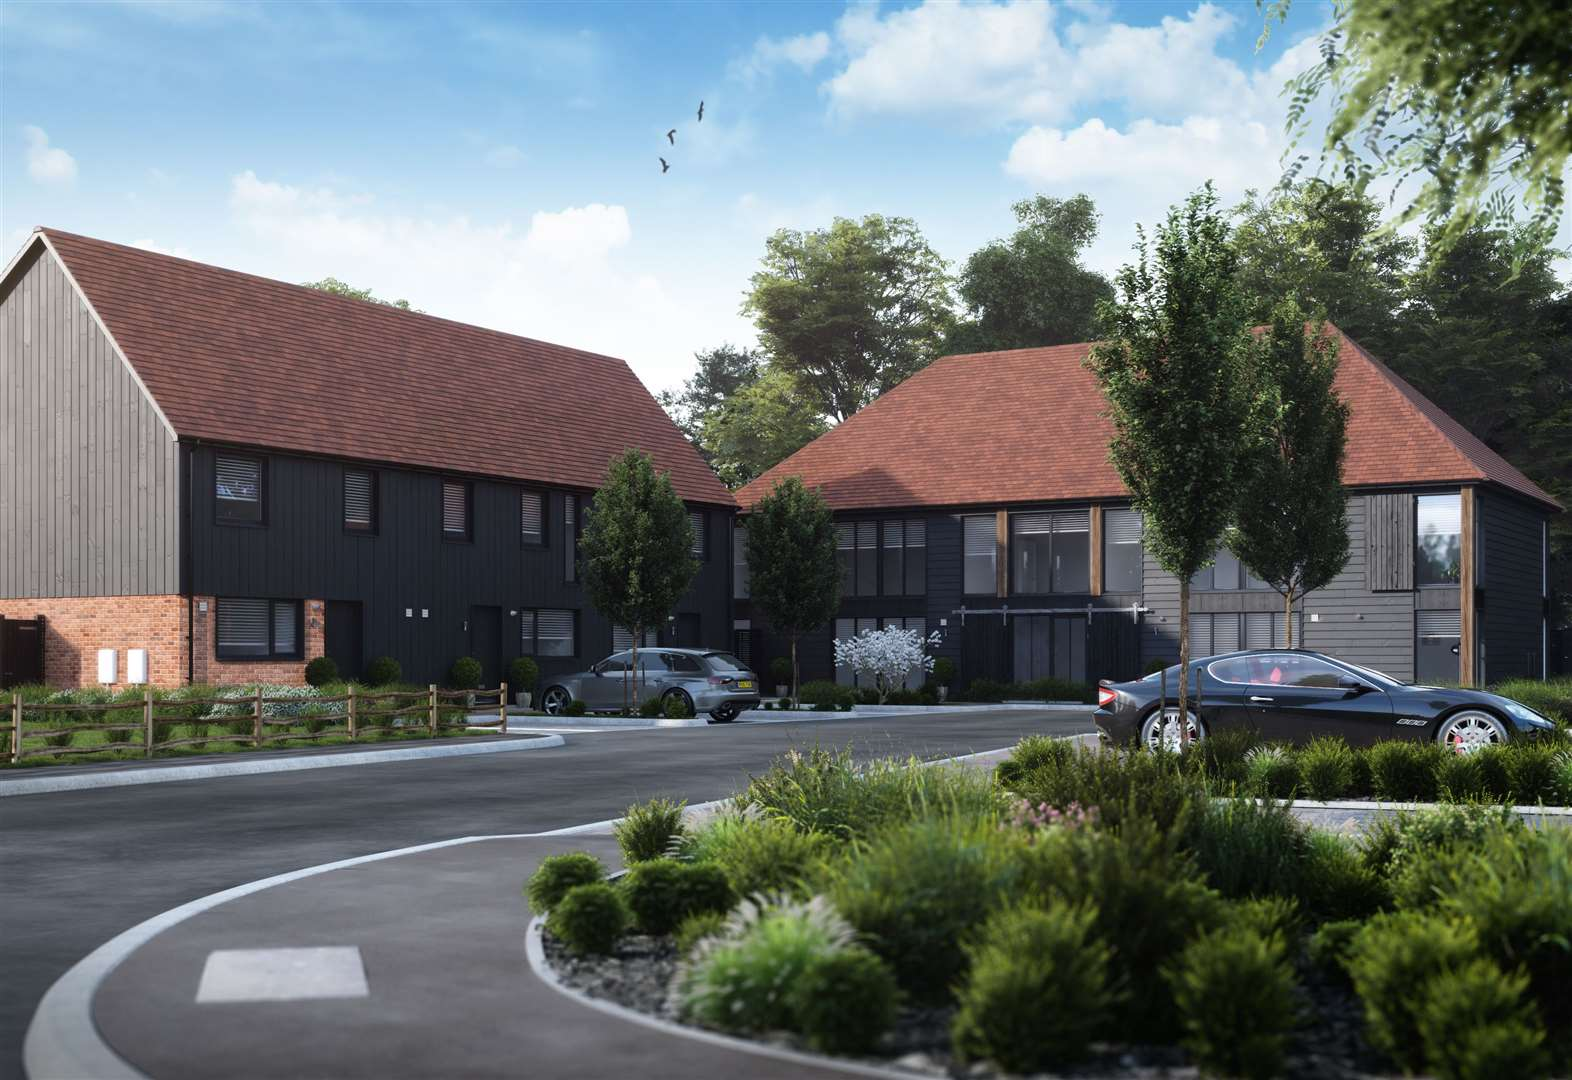 Brand new homes in one of Kent's most desirable villages.